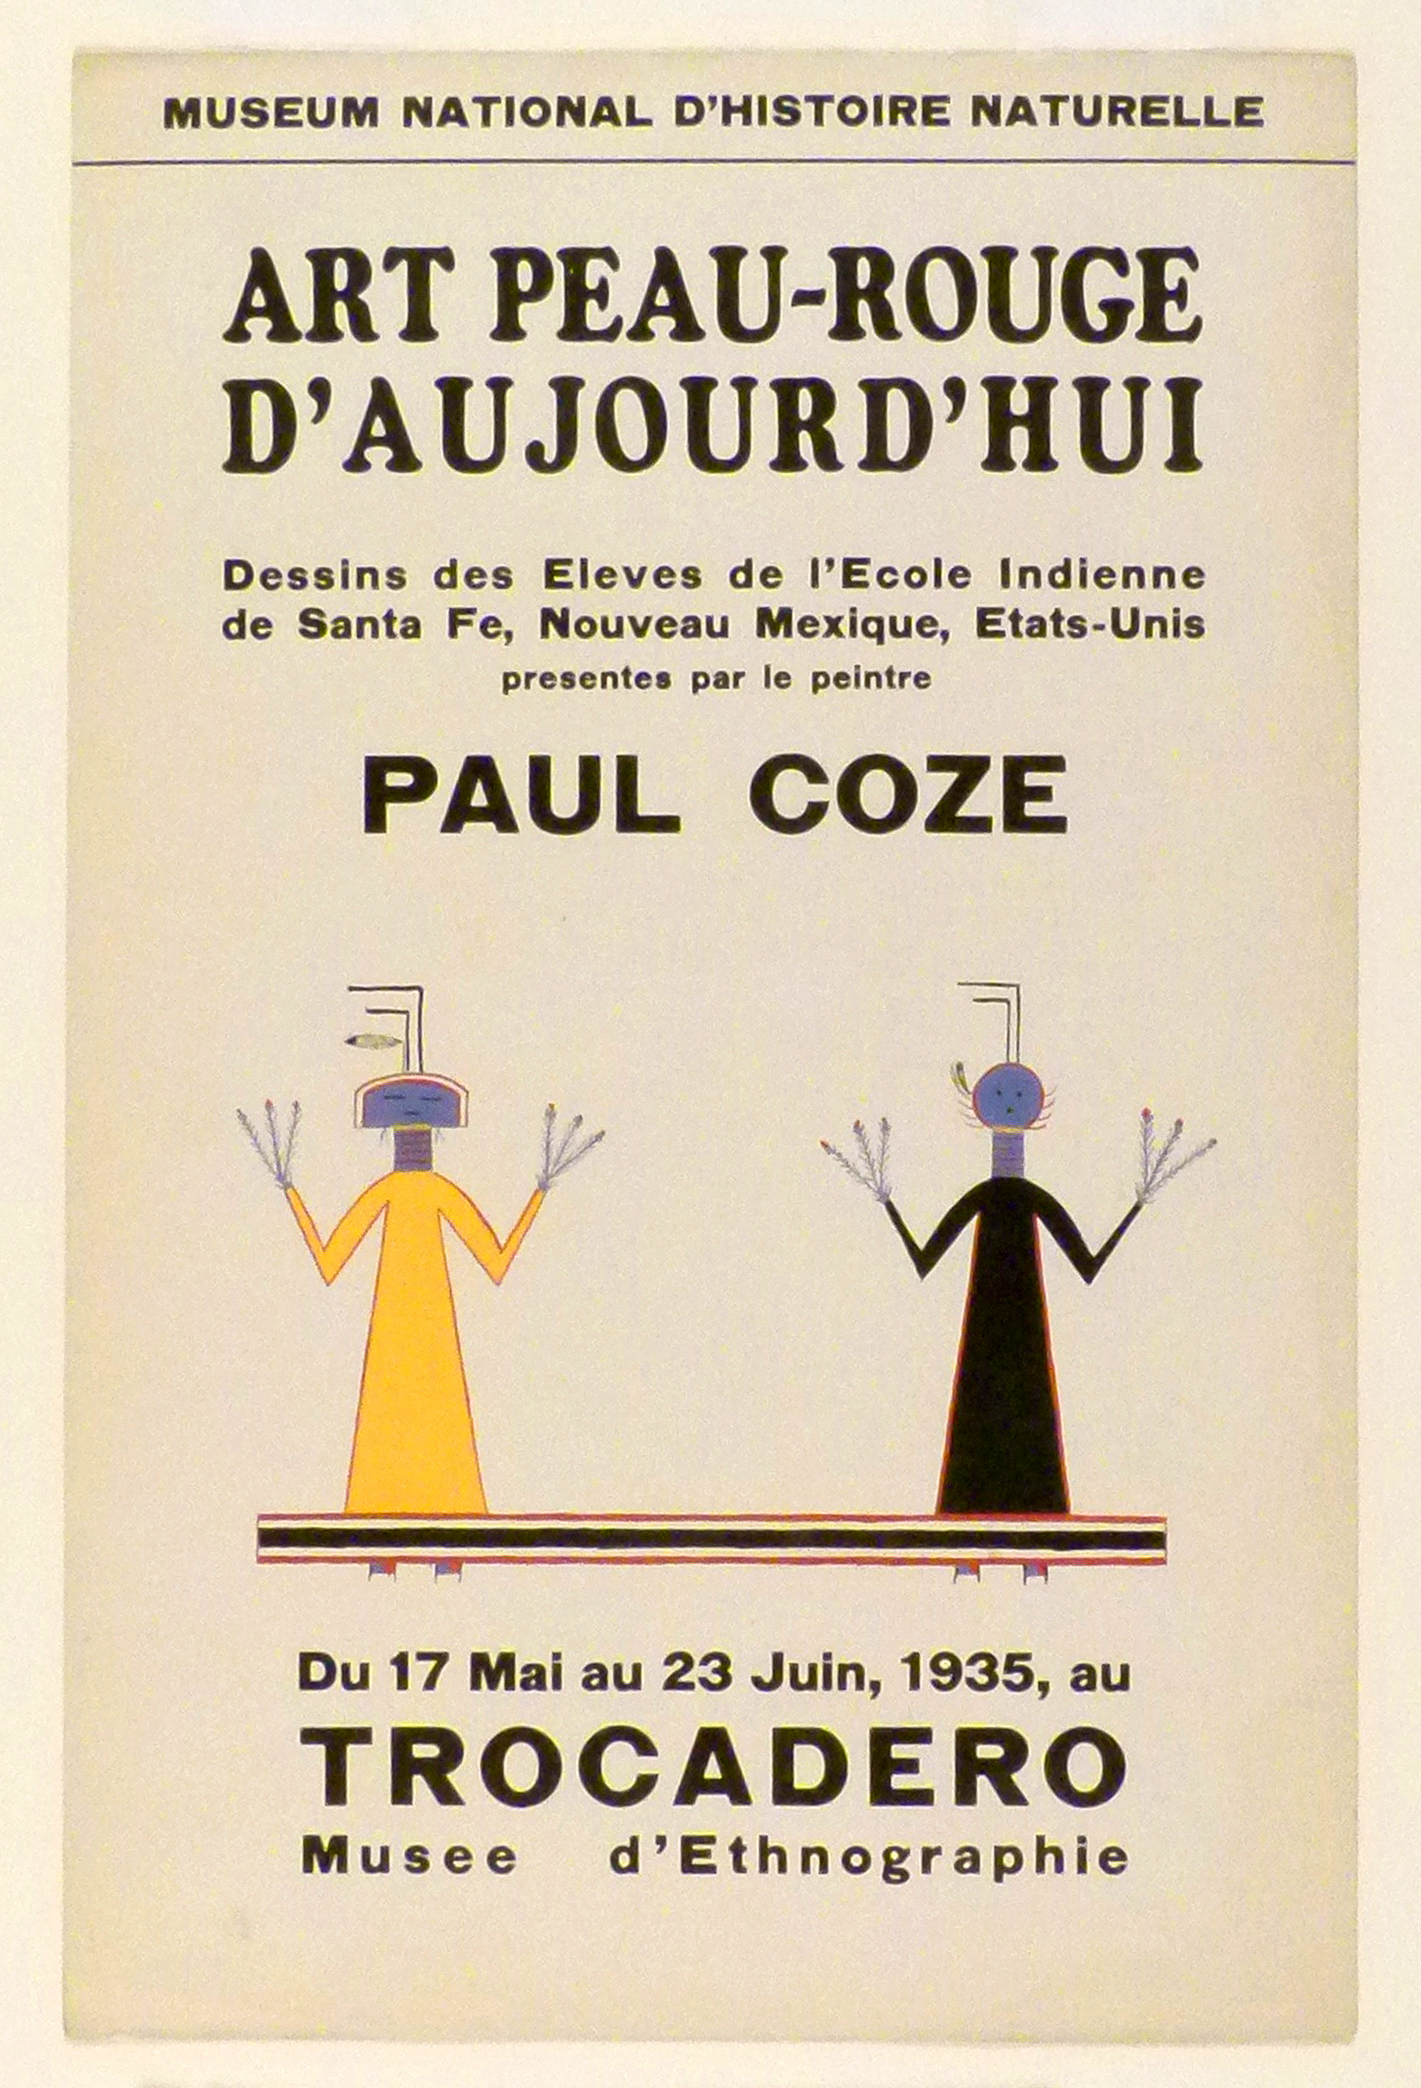 Art Exhibition Poster with painting of two upright figures resting on a horizontal black and red bar. The figure at left has a yellow body and a semicircular blue head, the figure at right has a black body and a circular head.